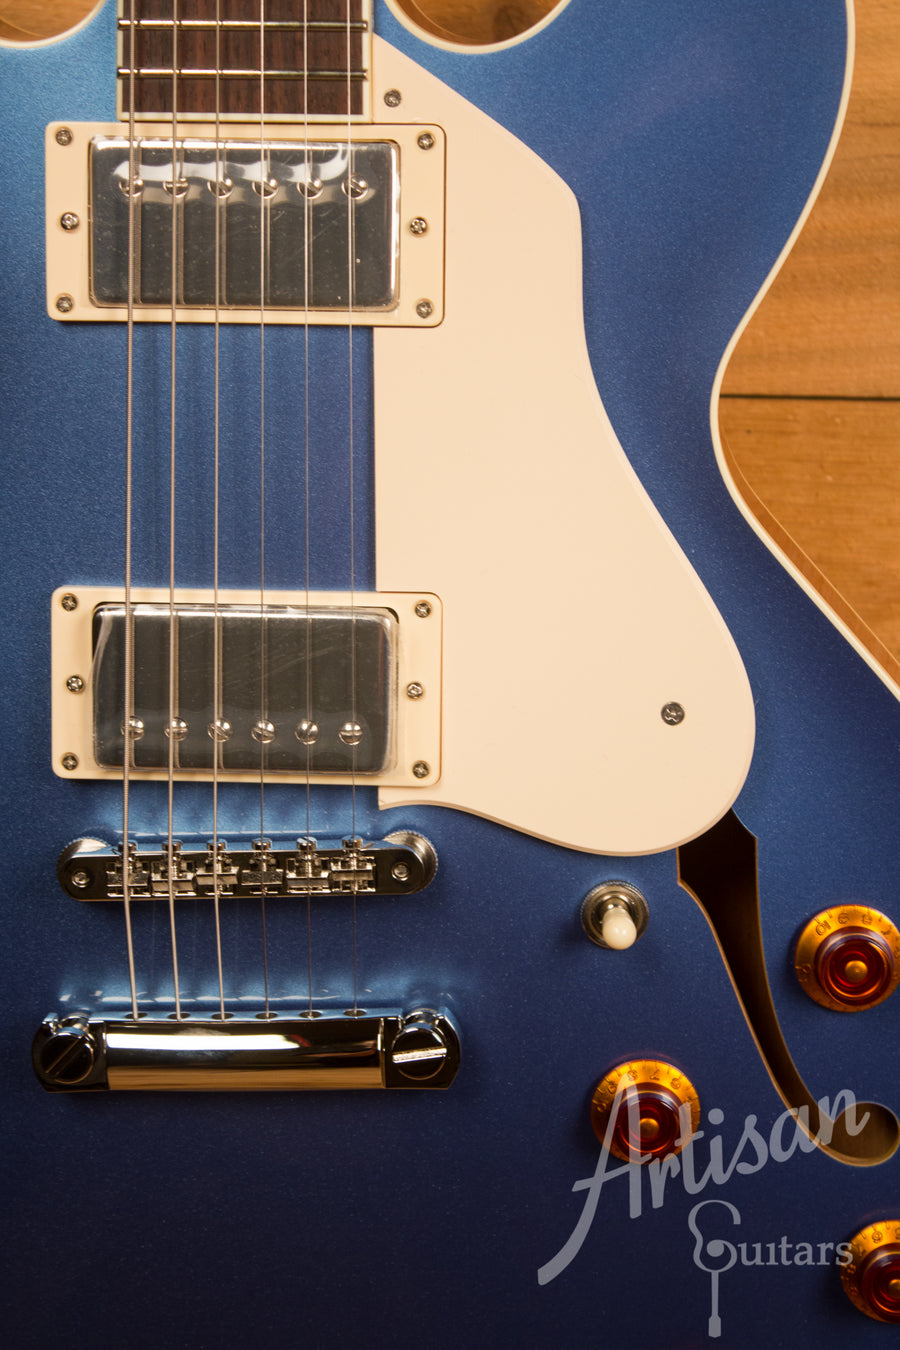 Collings I-35 in Pelham Blue Finish with Parallelogram Inlay and Lollar Humbuckers ID-11537